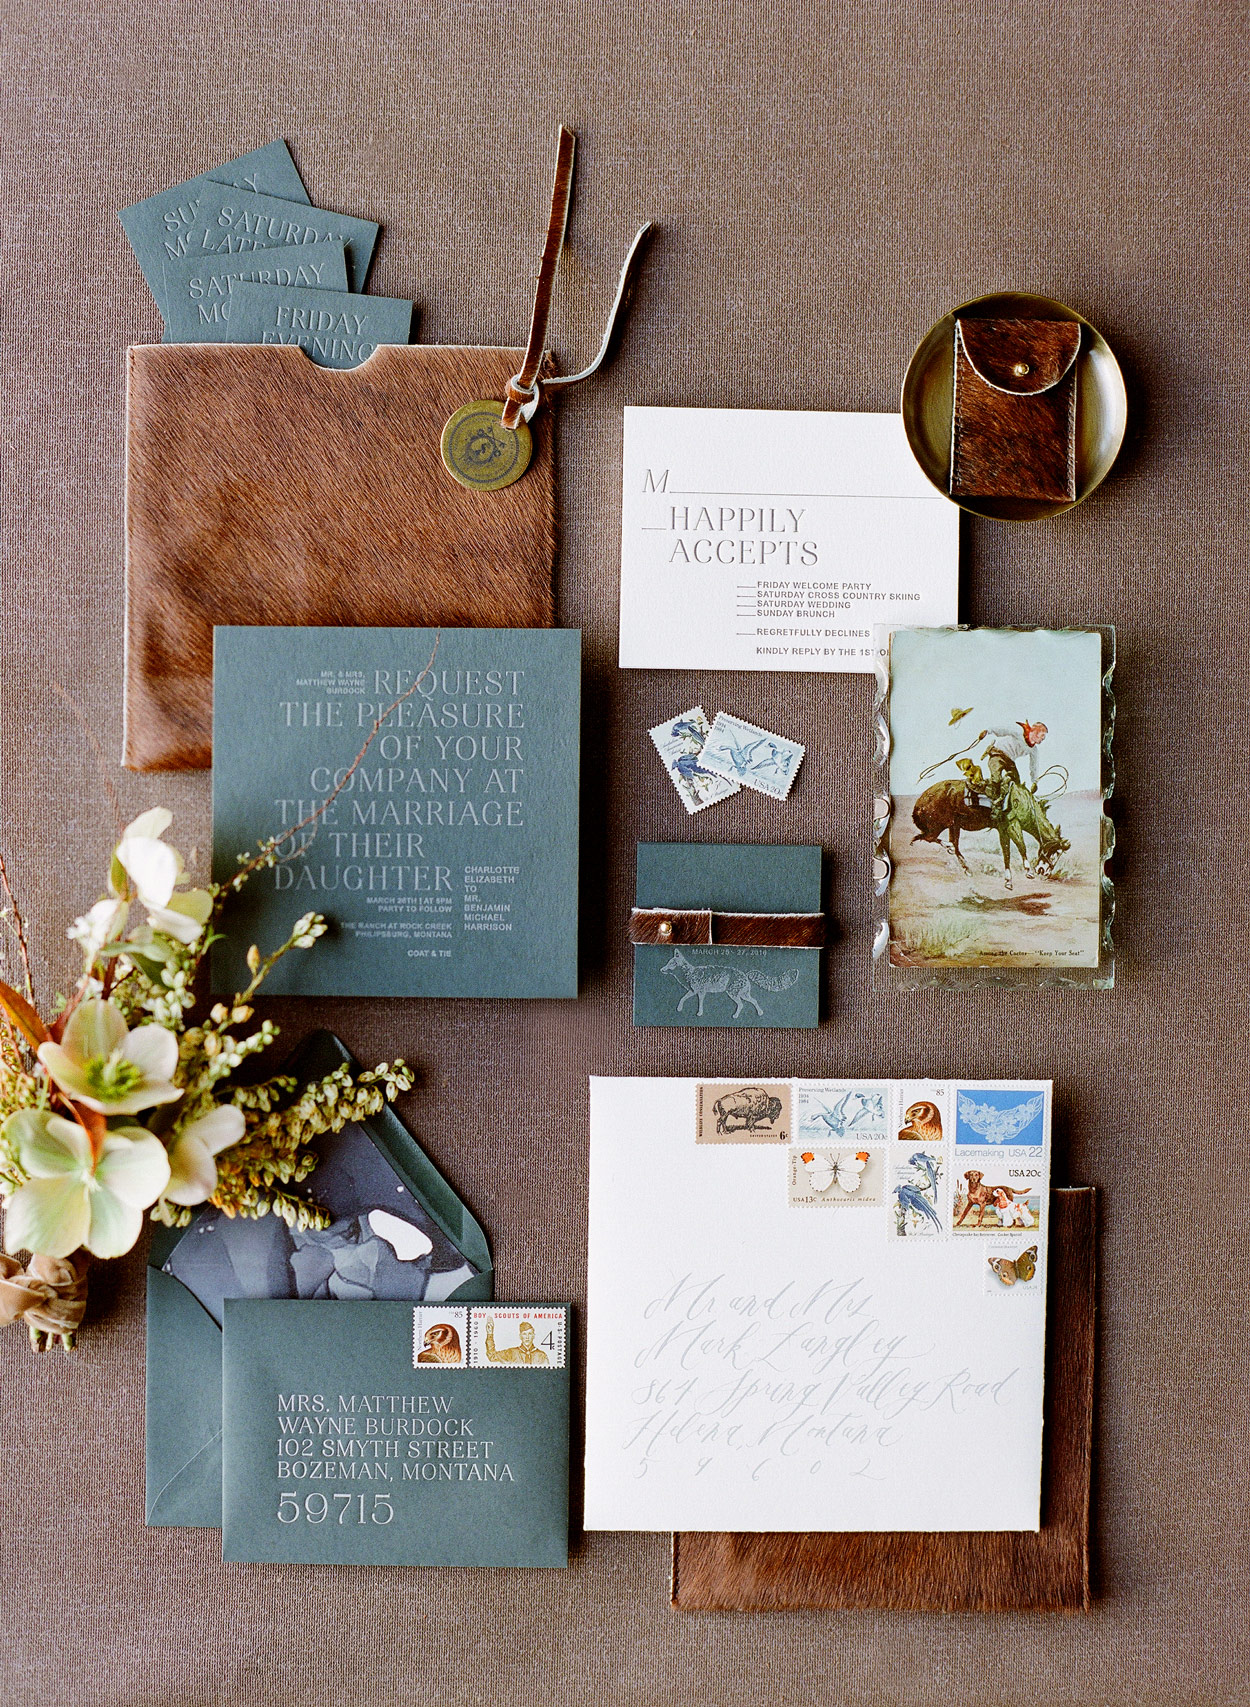 wedding invitations faux animal hide sleeves leather accents